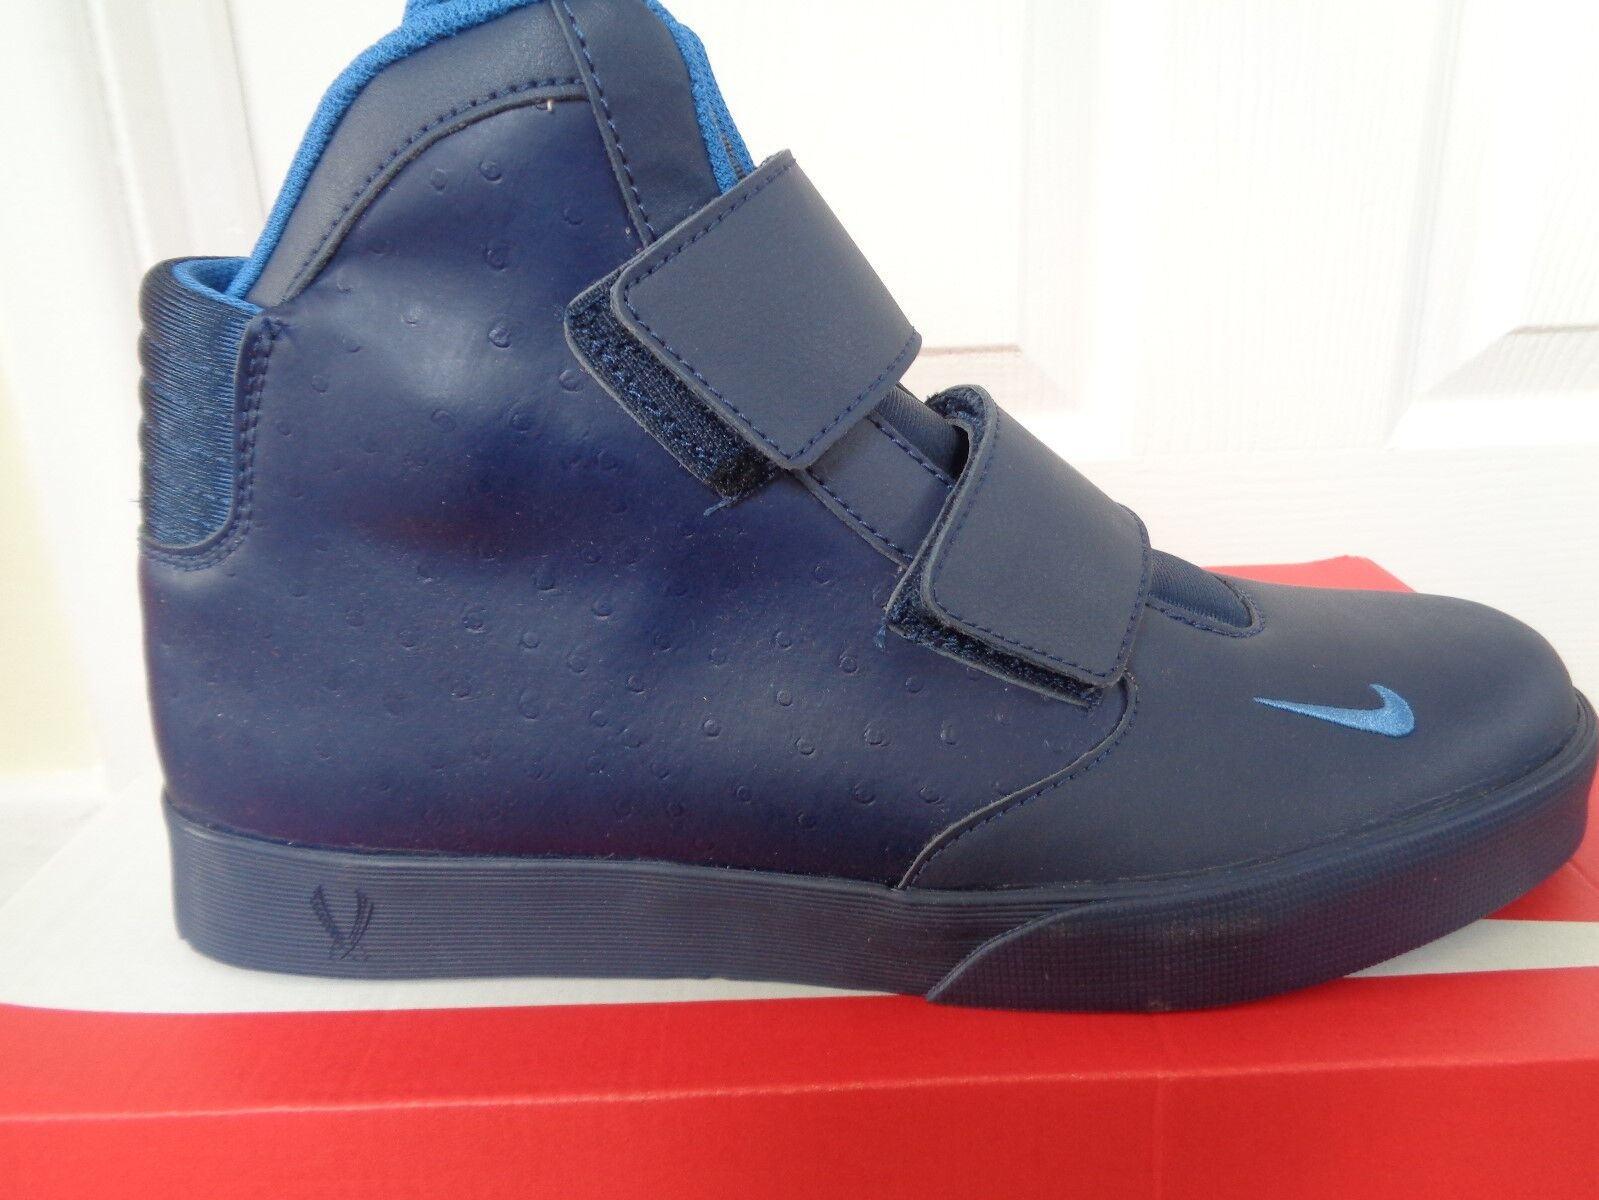 Nike Flystepper 2K3 trainers sneakers 644576 440 eu 42.5 us 9 NEW+BOX The latest discount shoes for men and women